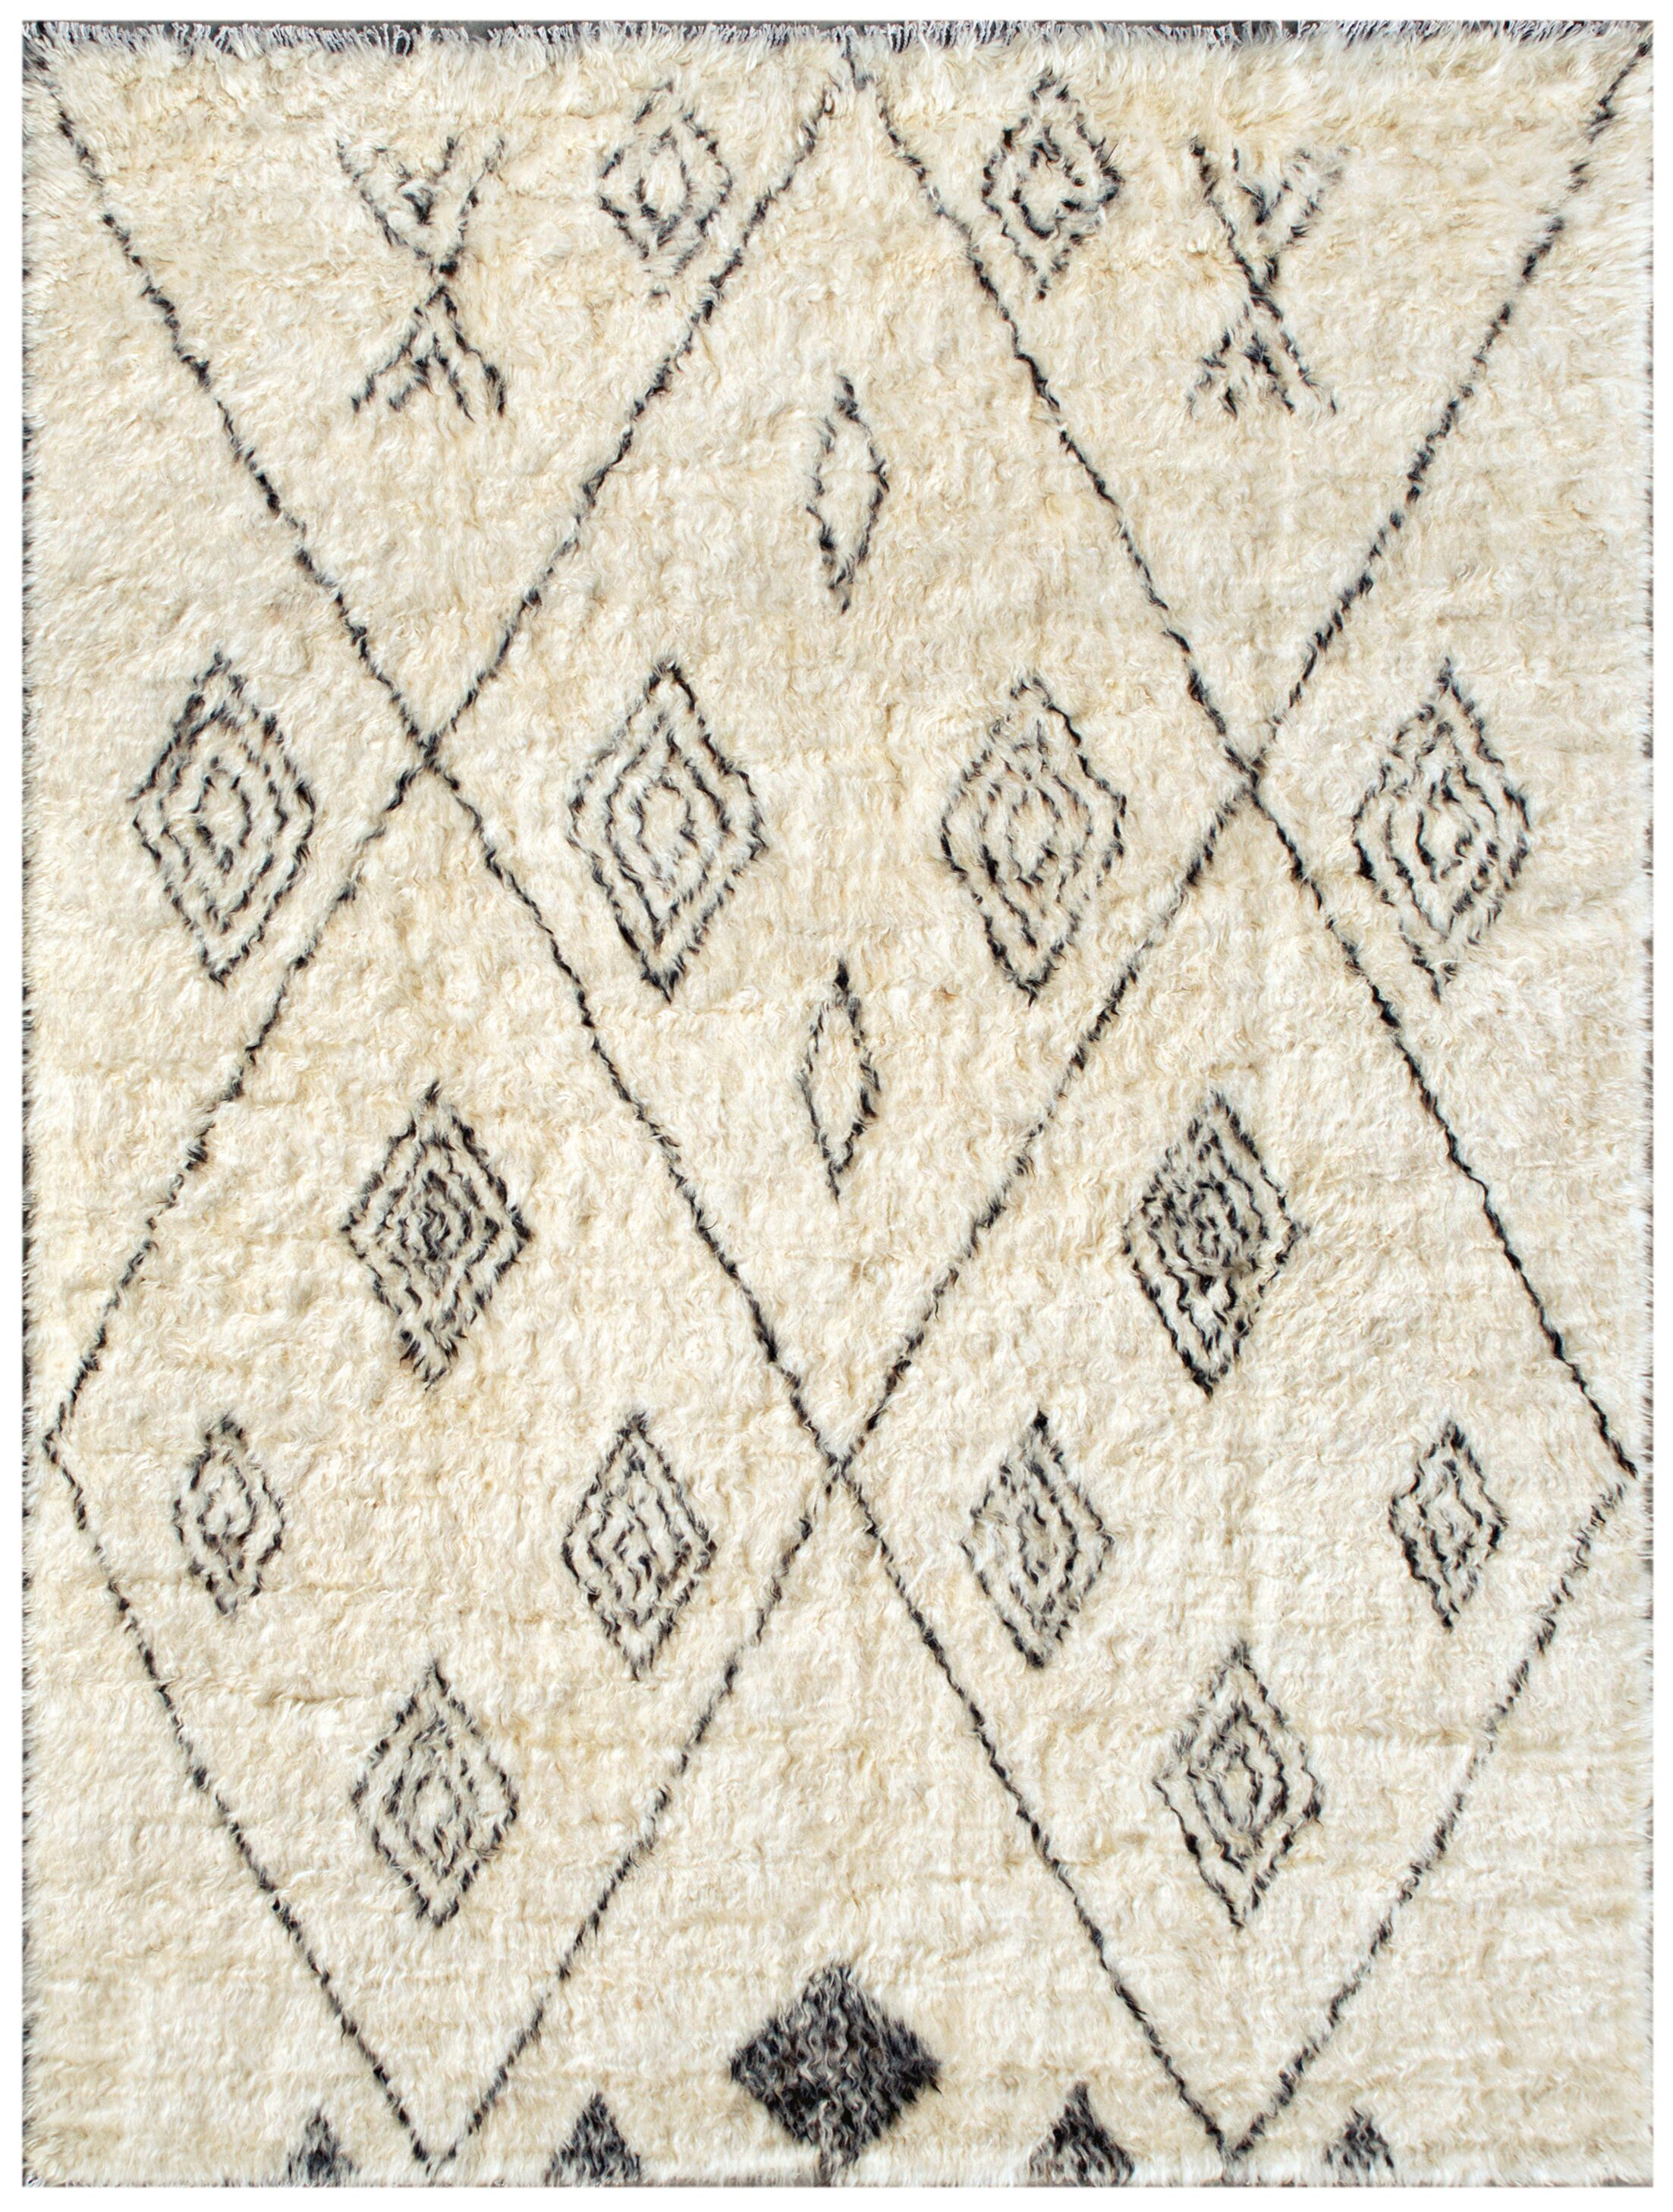 Moroccan Hand-Knotted Ivory Area Rug Rug Size: Rectangle 5'11